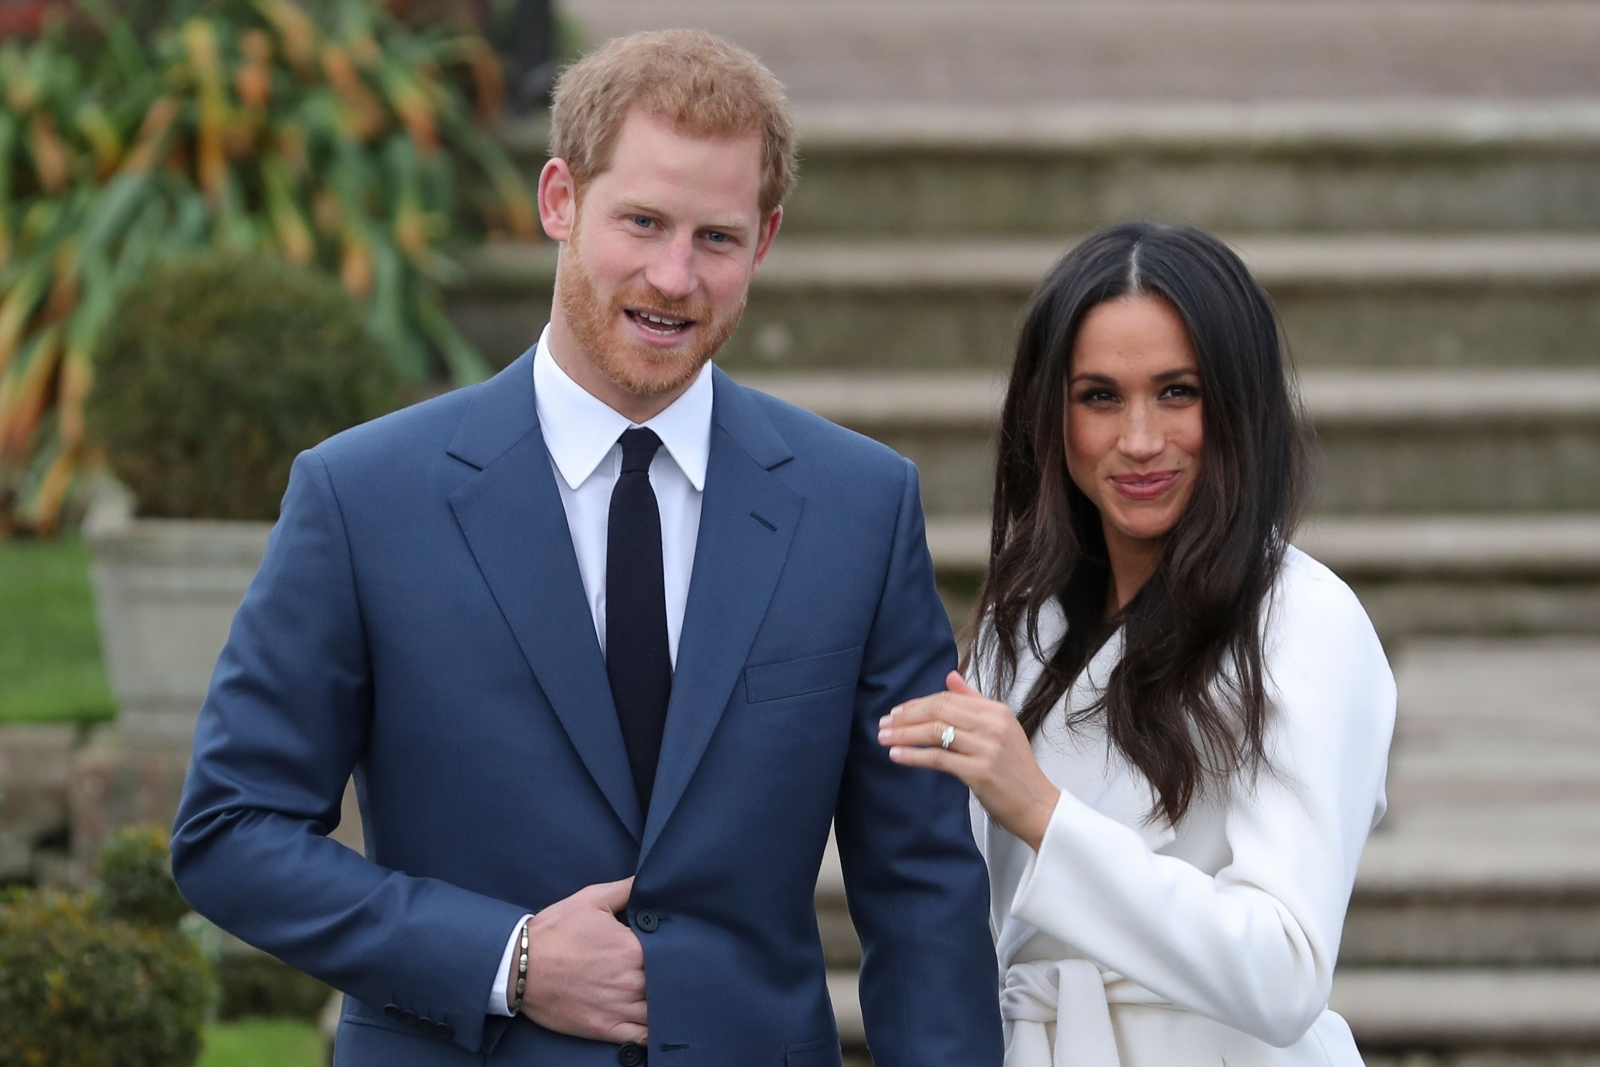 Prince Harry and Meghan Markle pose for photo after their engagement announcement, Markle flashes her glittering diamond ring